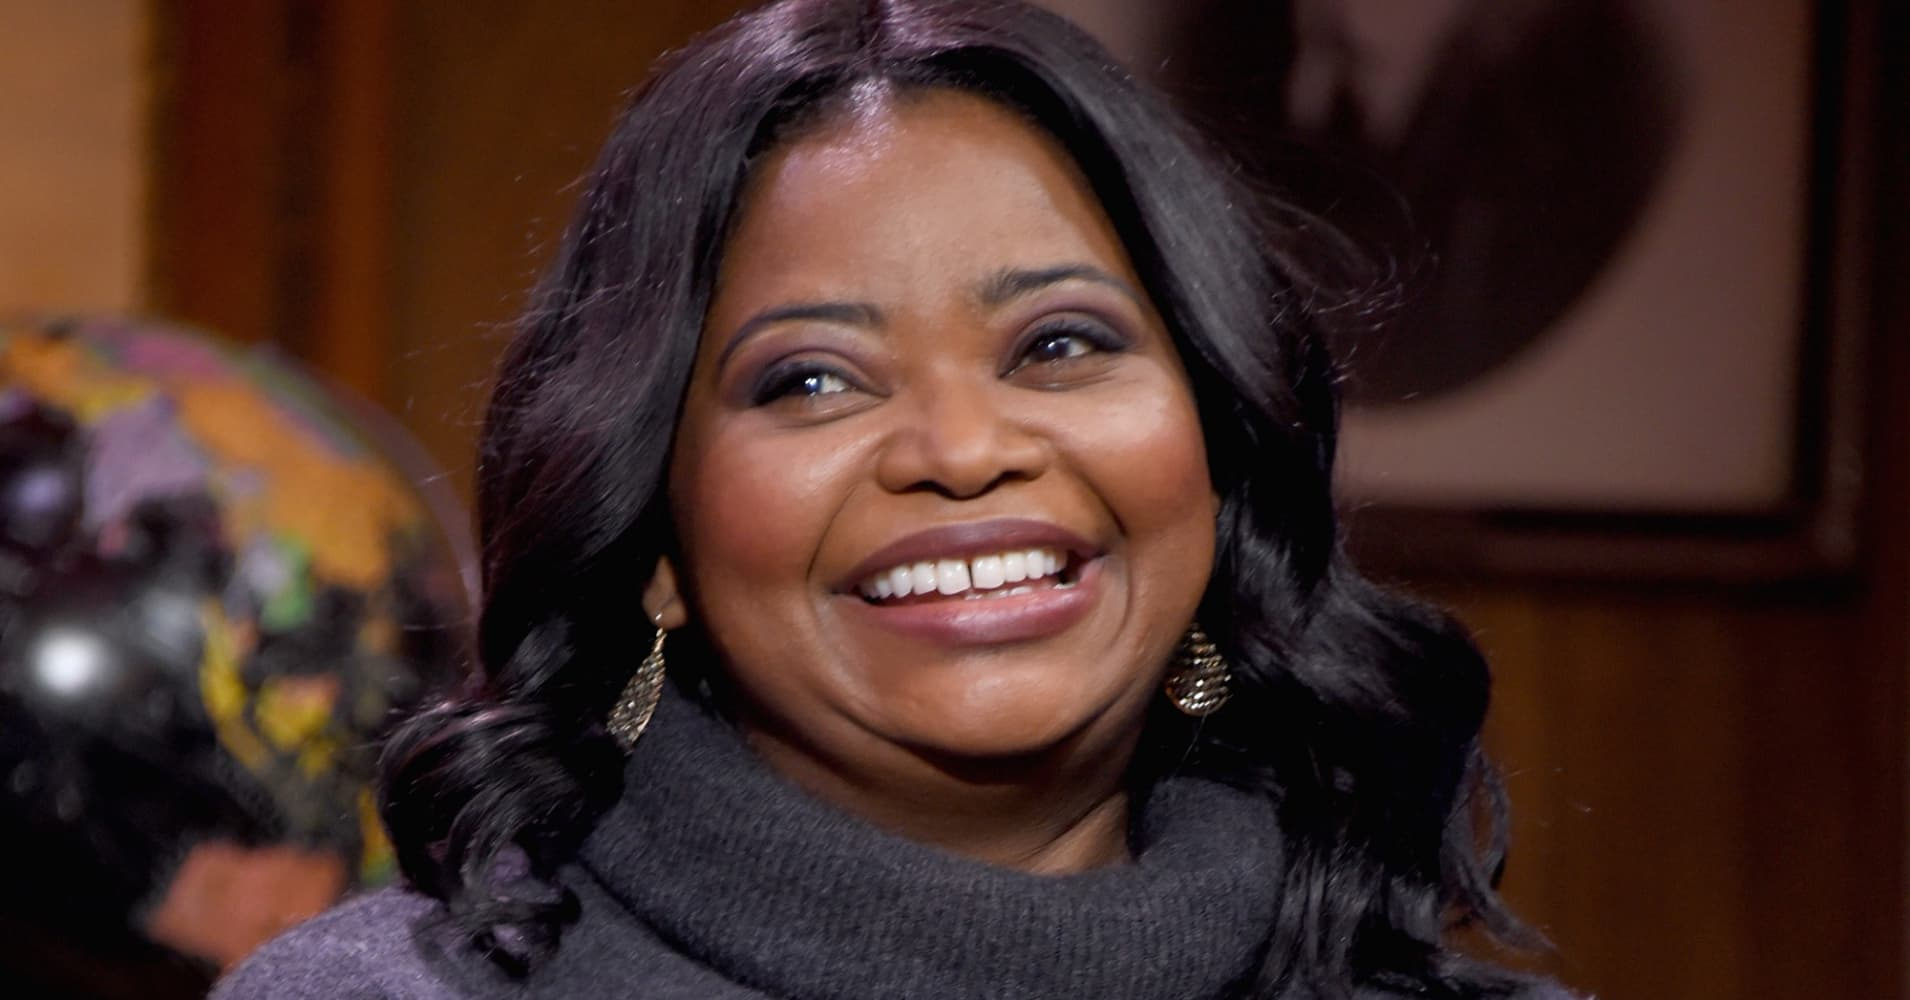 Jessica Chastain Helped Octavia Spencer Raise Her Salary by 500%